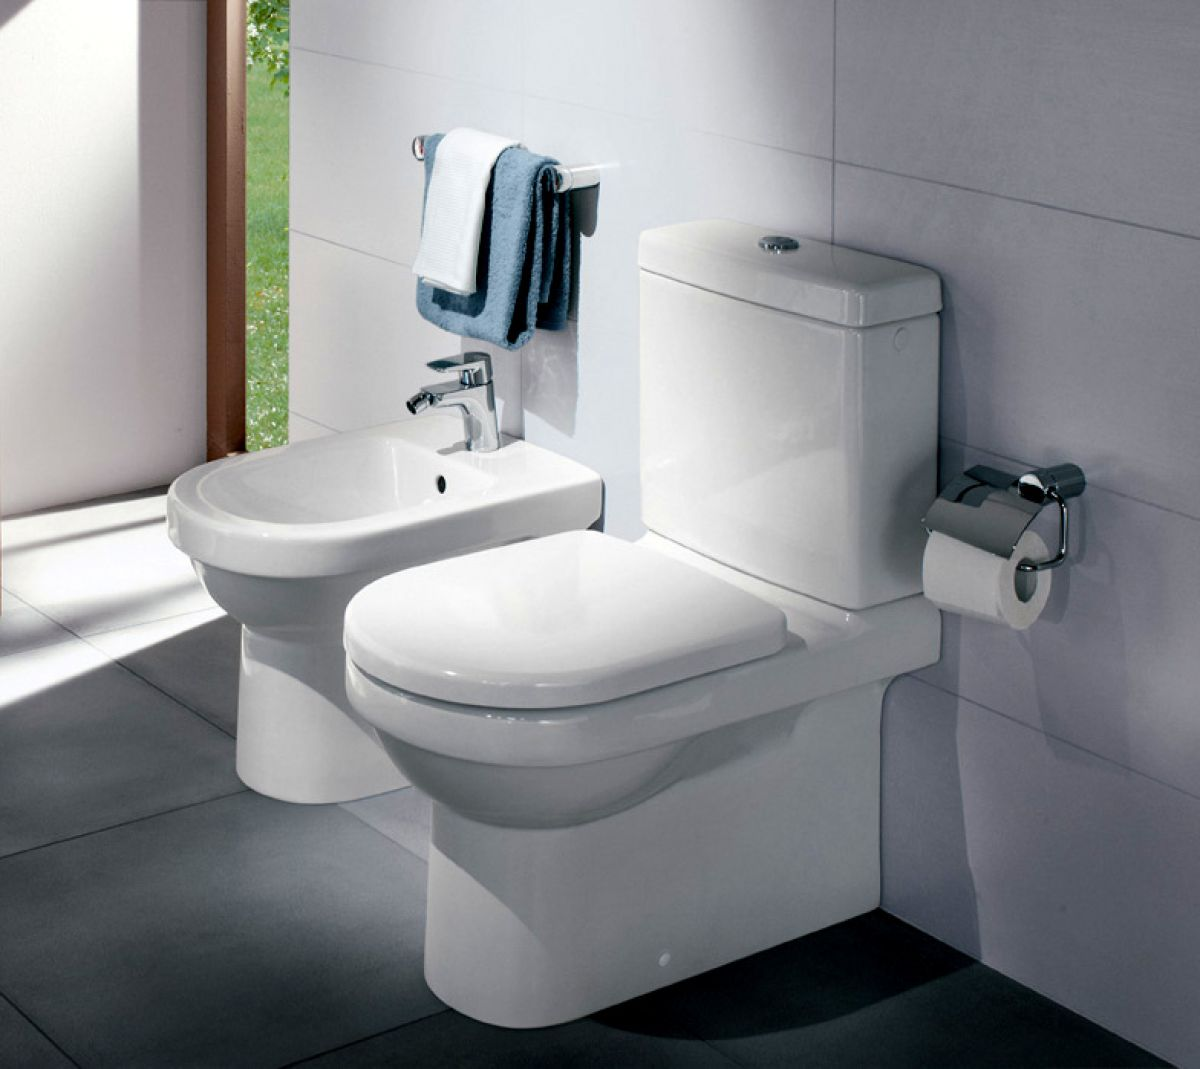 villeroy boch architectura bidet 5474 uk bathrooms. Black Bedroom Furniture Sets. Home Design Ideas